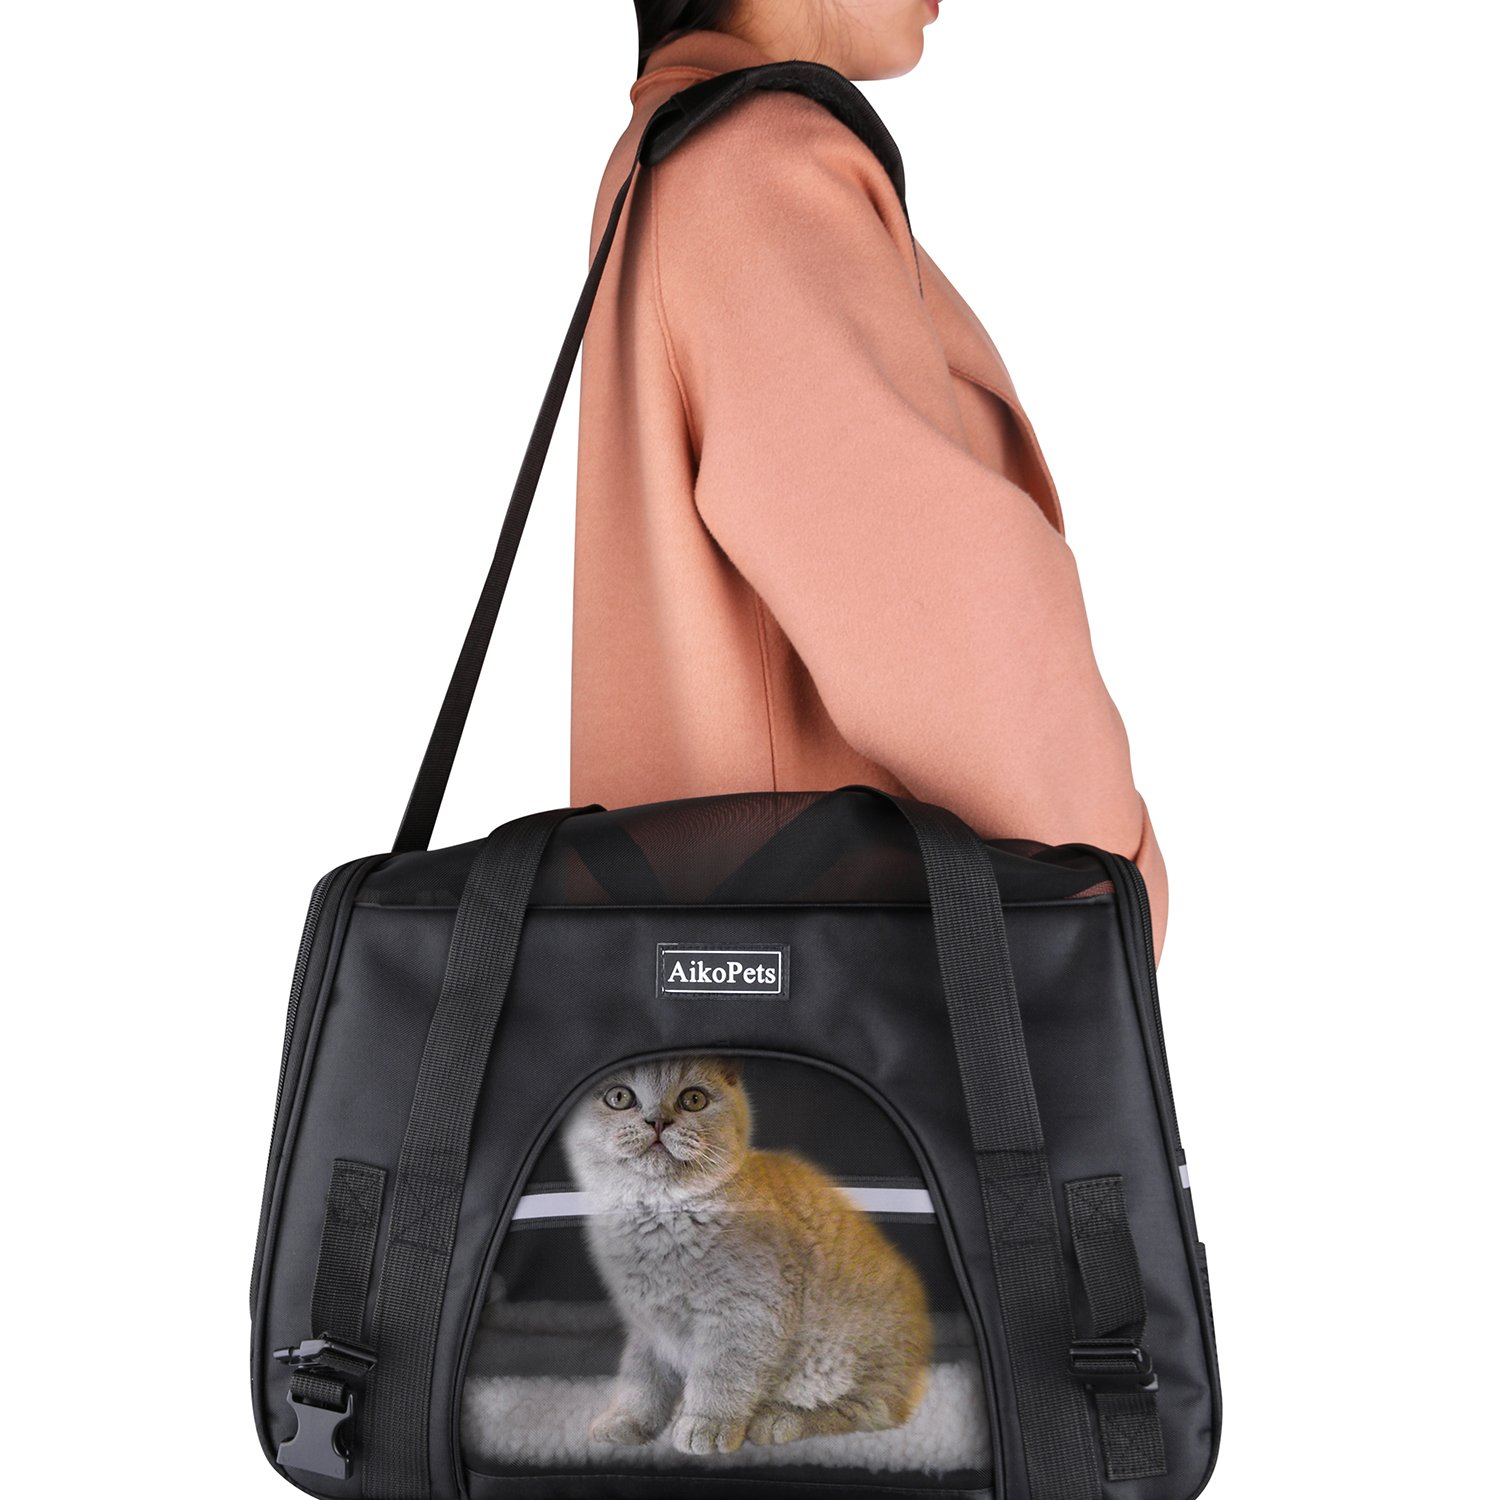 Cat Carrier, Airline Approved Pet Carrier for Medium Cat Travel Carrier Soft Sided Small Dog Carrier Fits Under Seat Small Animal Carrier Puppy Carrier with Fleece Bedding & Safety Lock, Medium Size by AikoPets (Image #6)